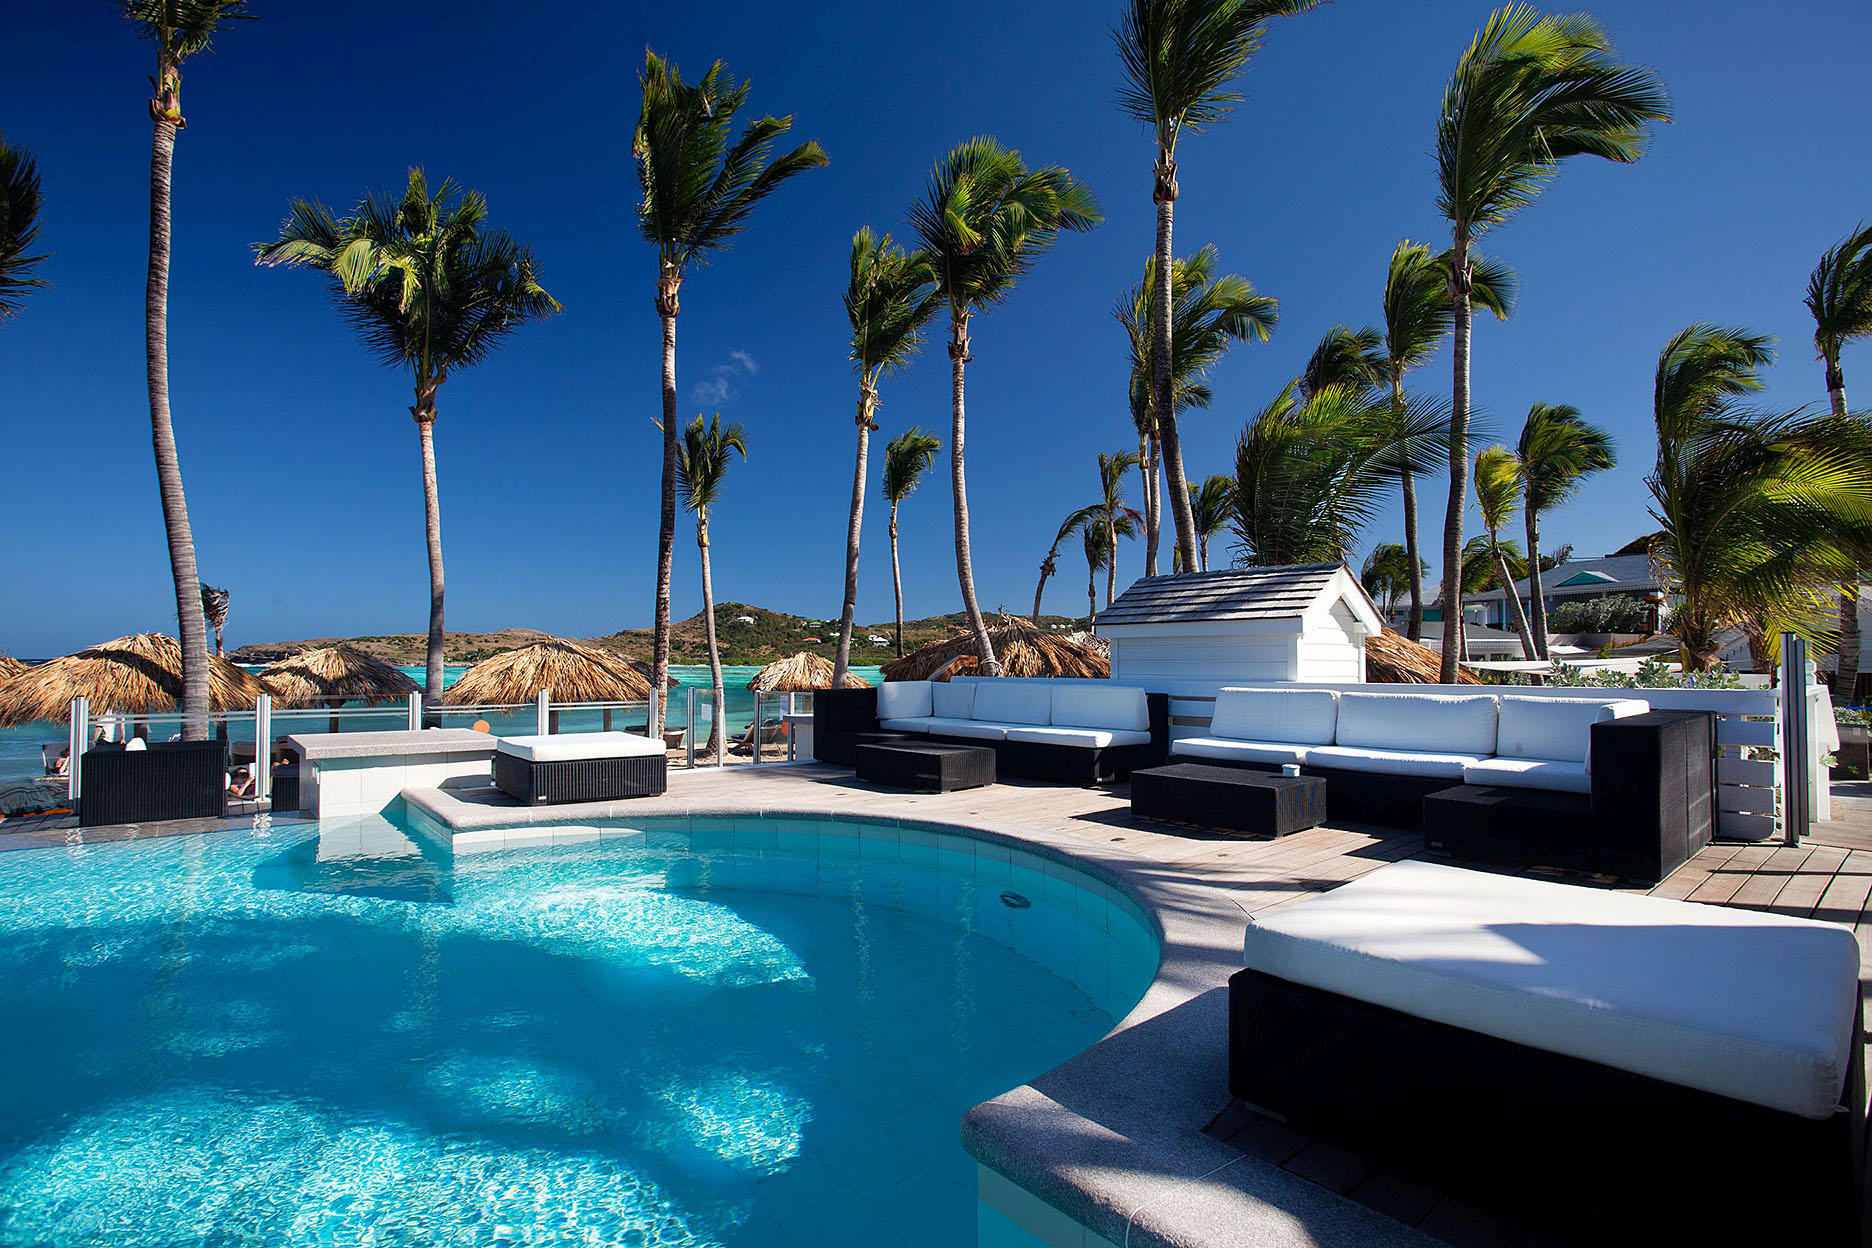 St. Barth's for the Holidays